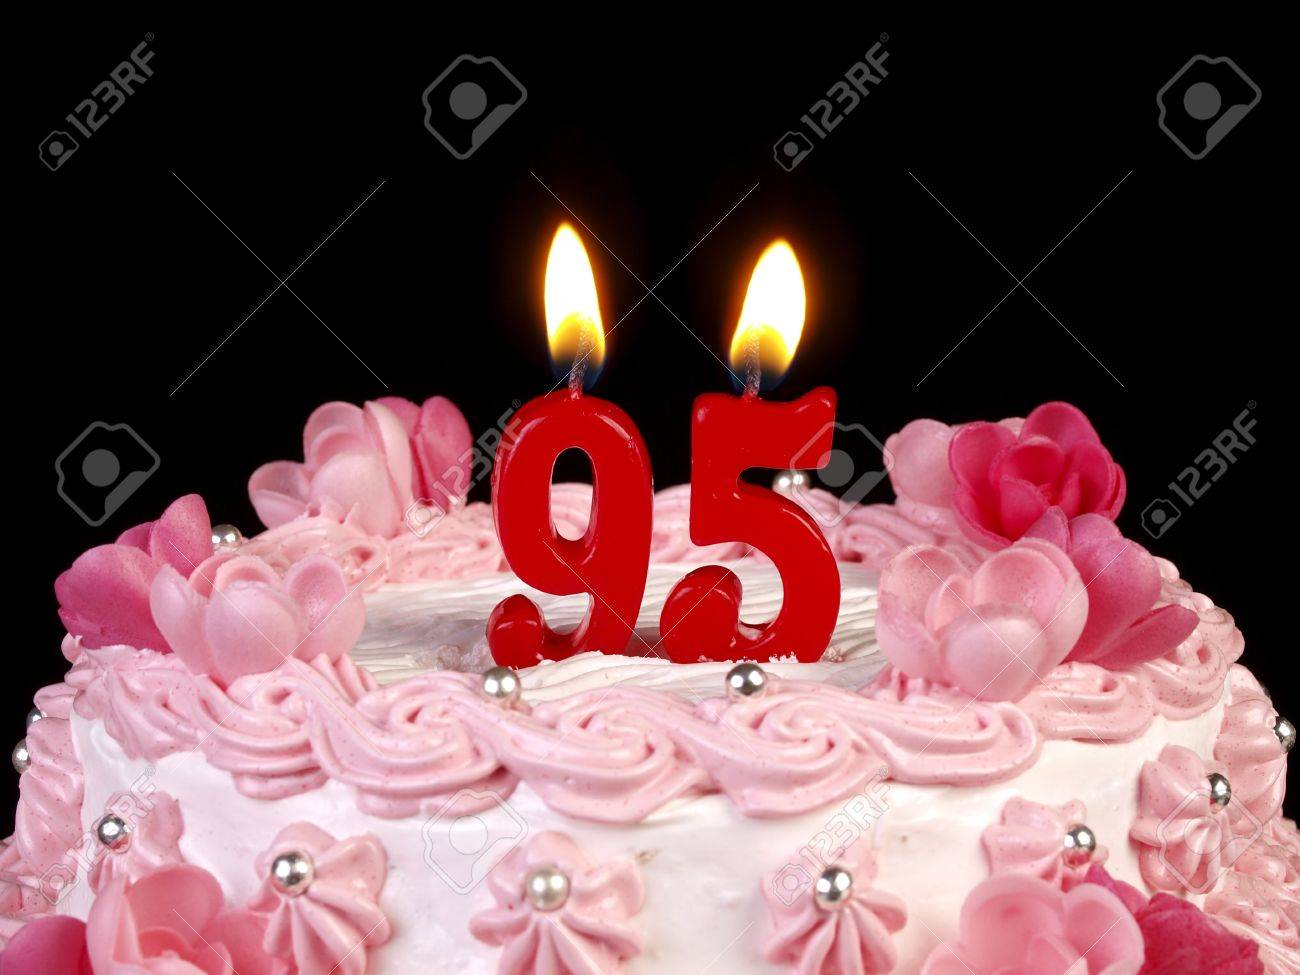 Birthday Cake With Red Candles Showing Nr 95 Stock Photo